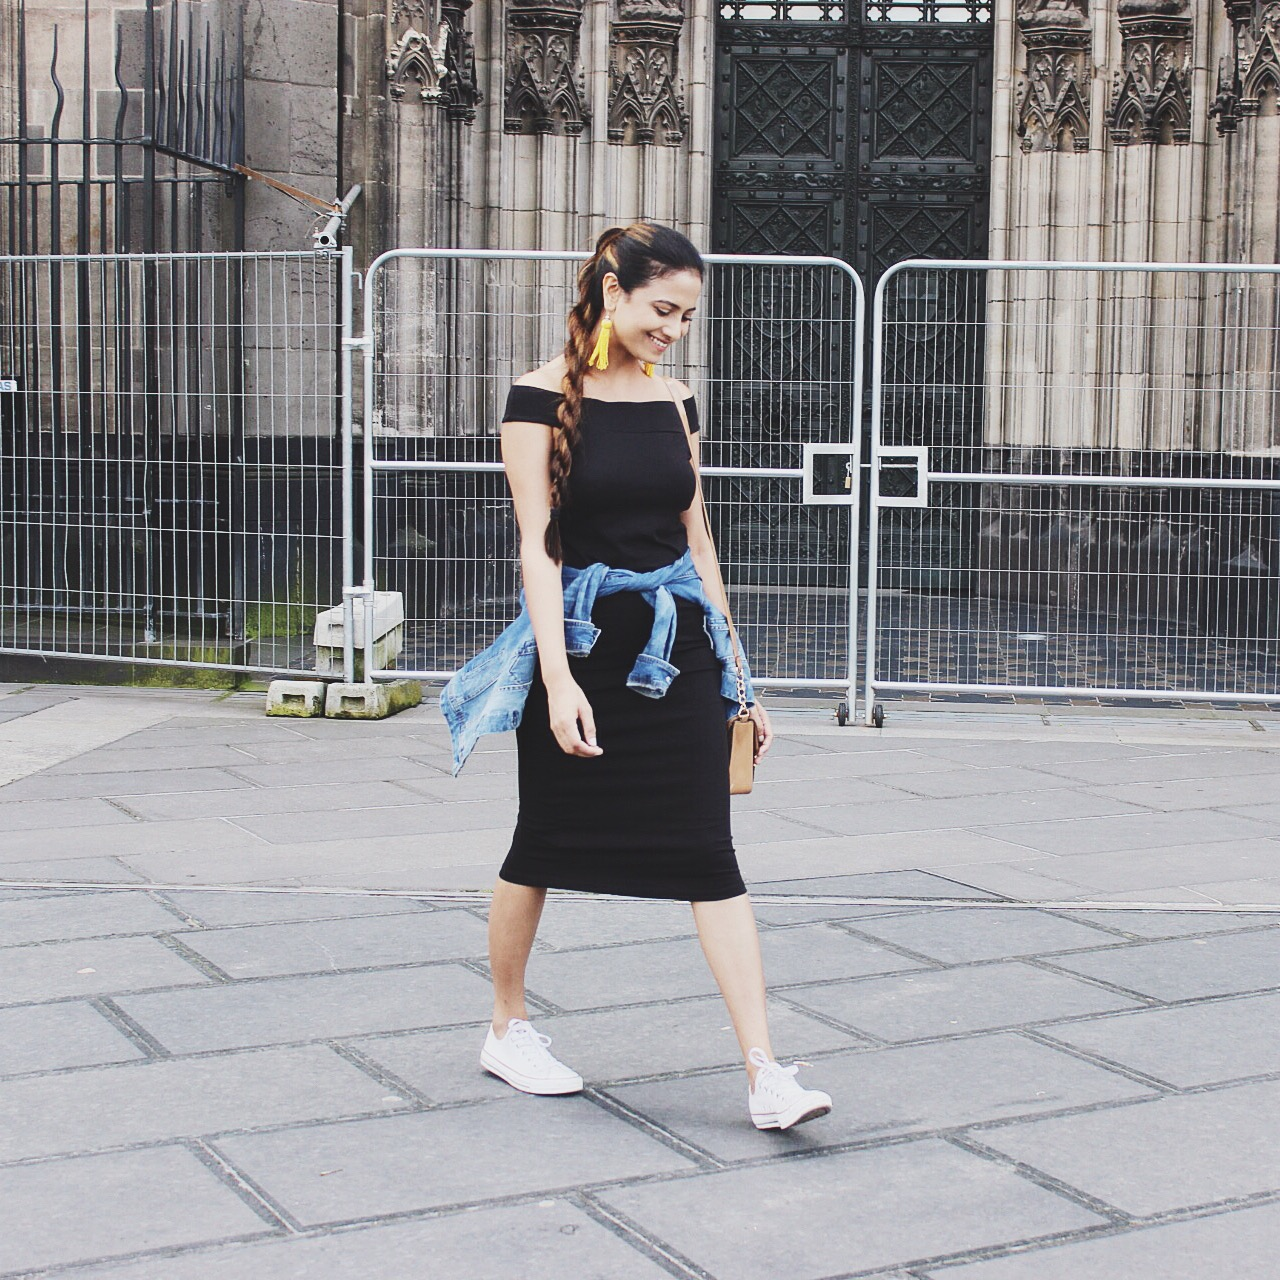 Black dress in summer - How To Wear Black Dress Black In Summer Pencil Dress Style Wear Trends